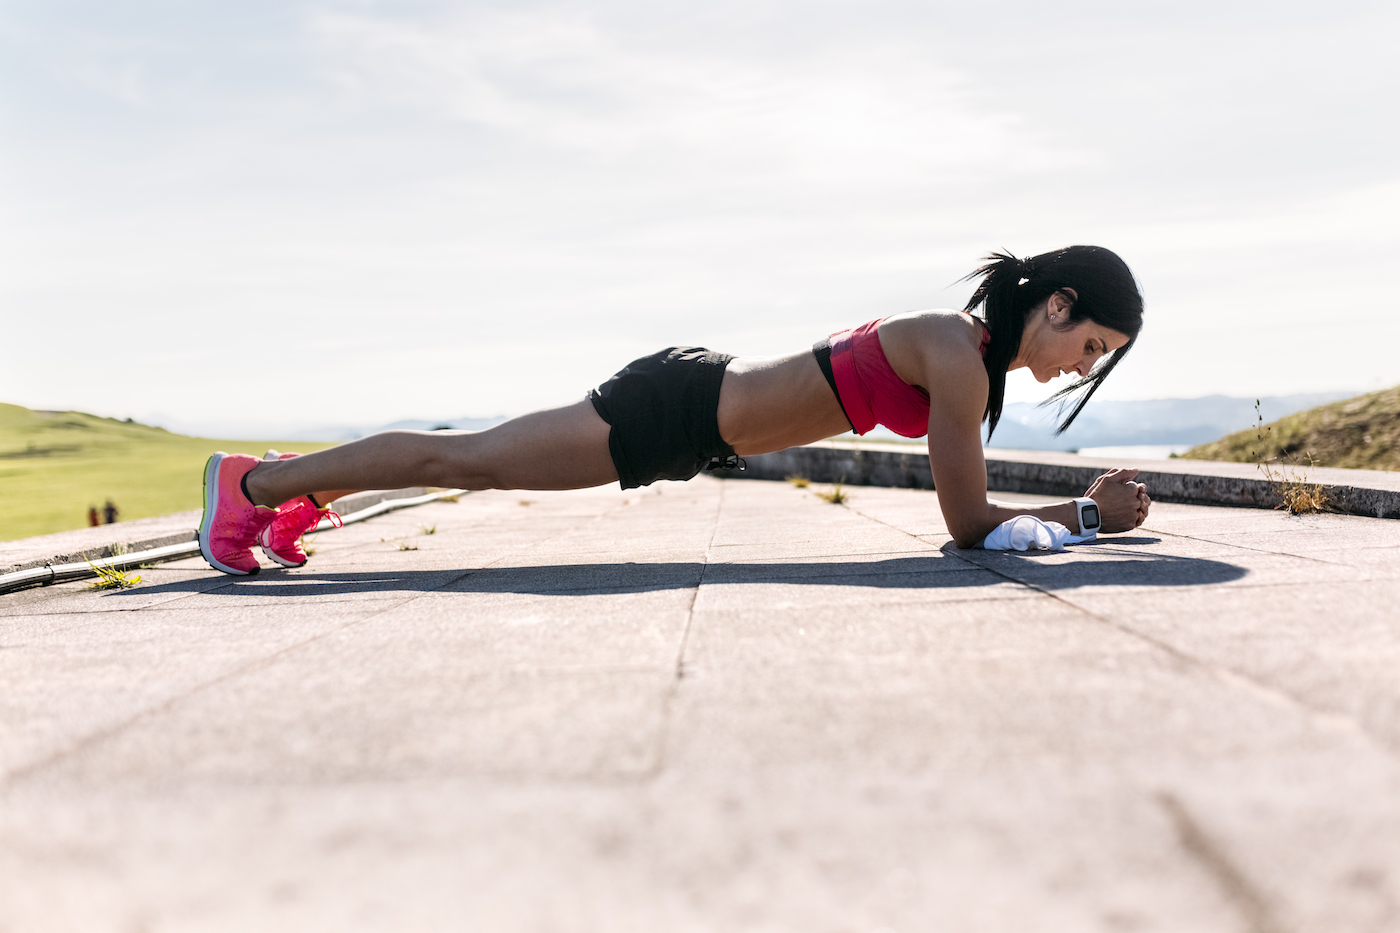 Thumbnail for 'Sphinx Push-Ups' Will Stretch and Strengthen Your Upper Body in a Single Move